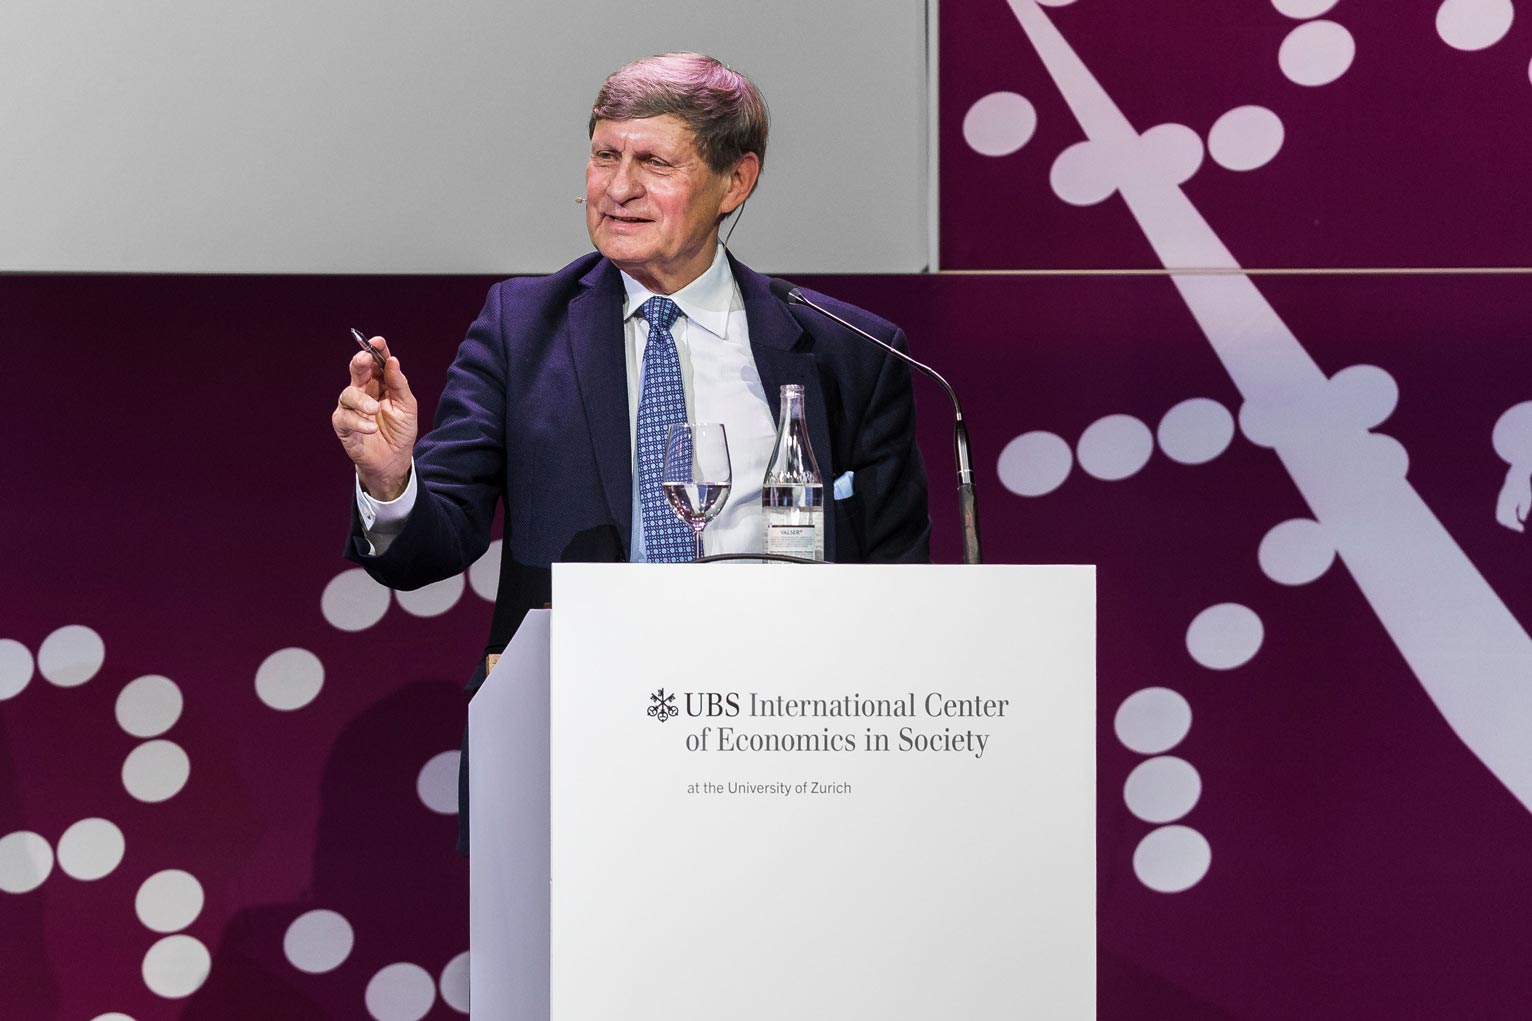 Leszek Balcerowicz (Warsaw School of Economics) presented his assessment of the globalization process since the 1990s.